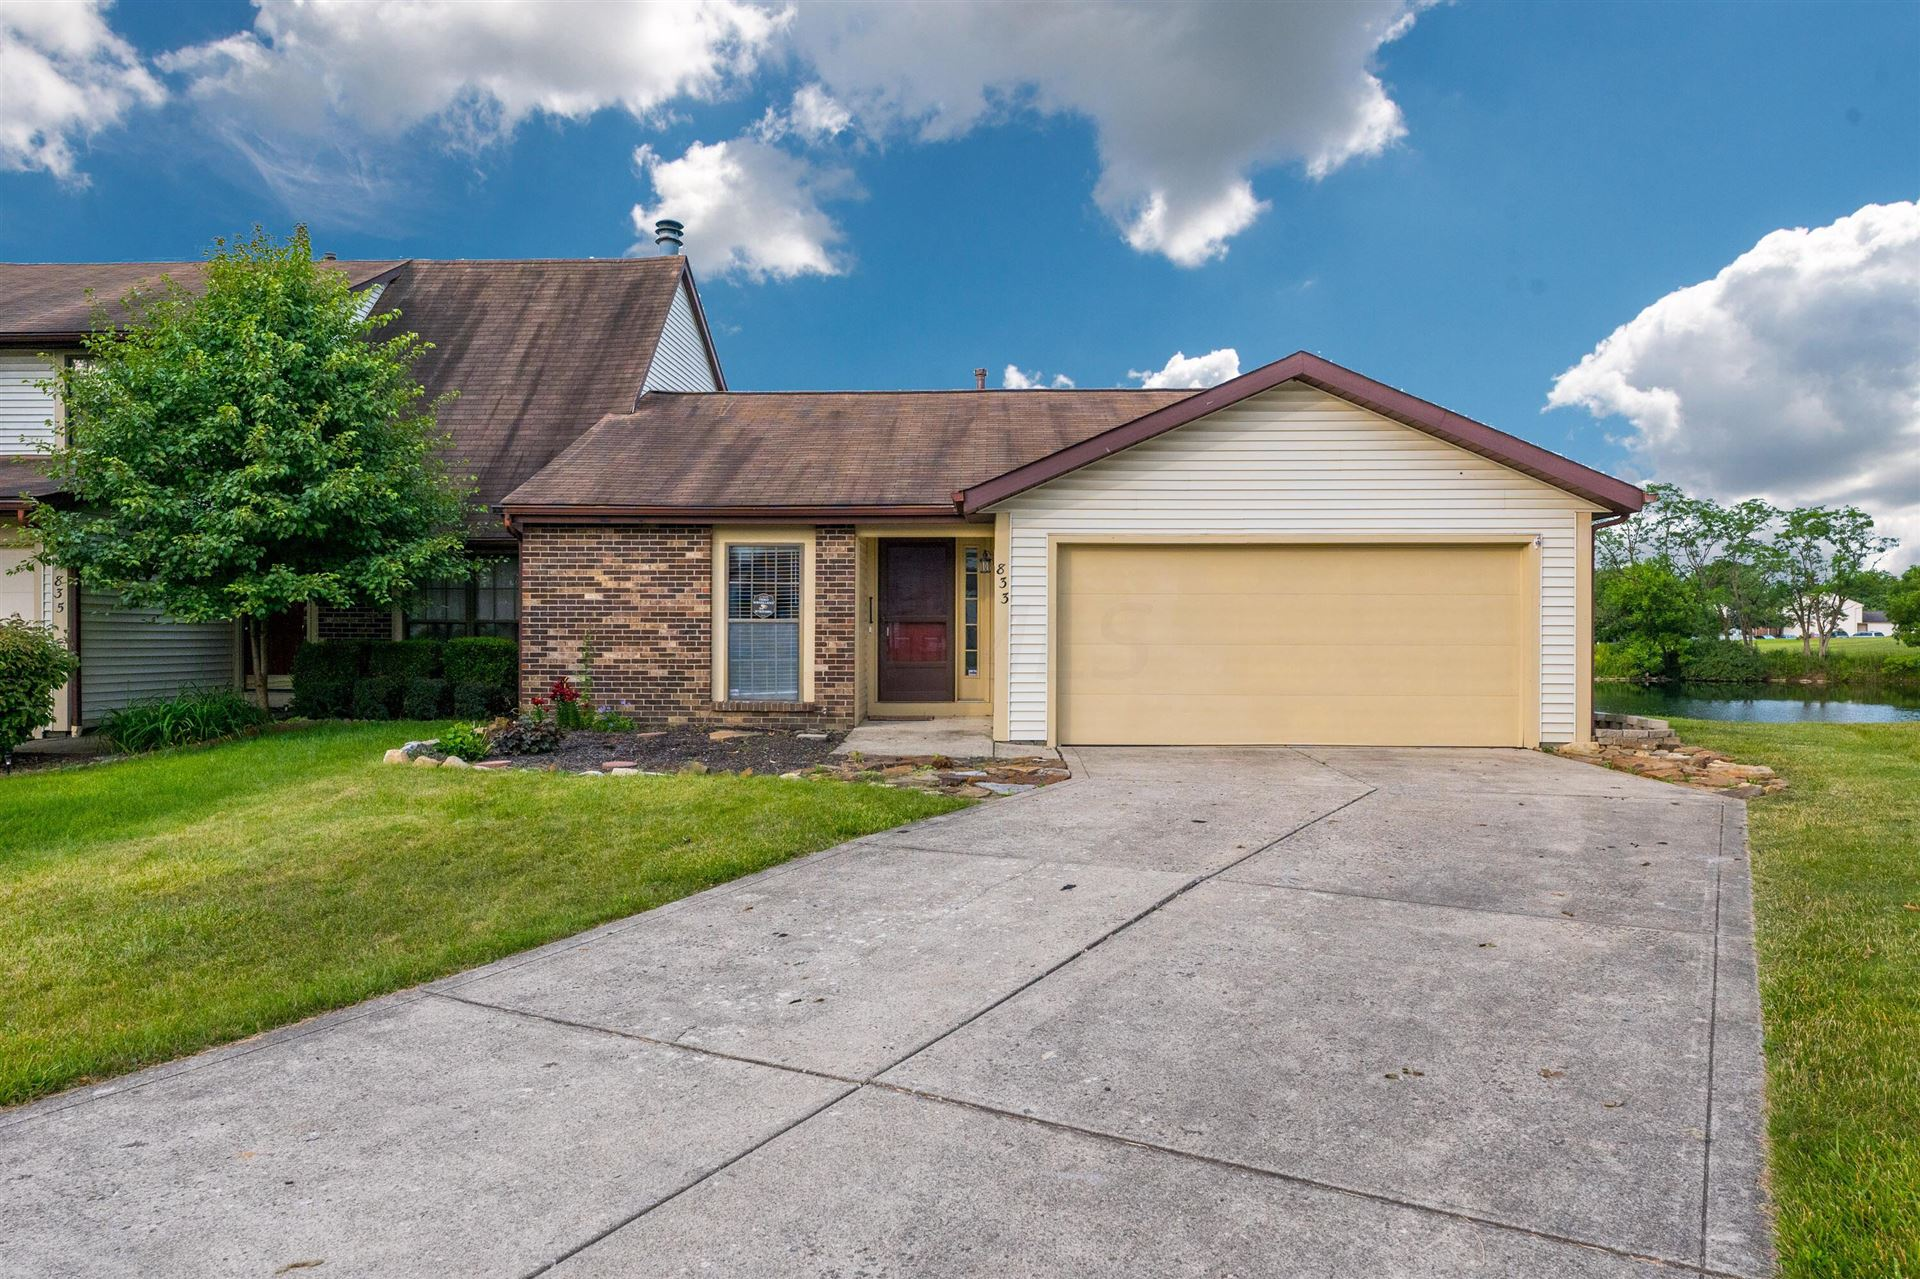 Photo of 833 Applewood Lane, Westerville, OH 43081 (MLS # 221021927)